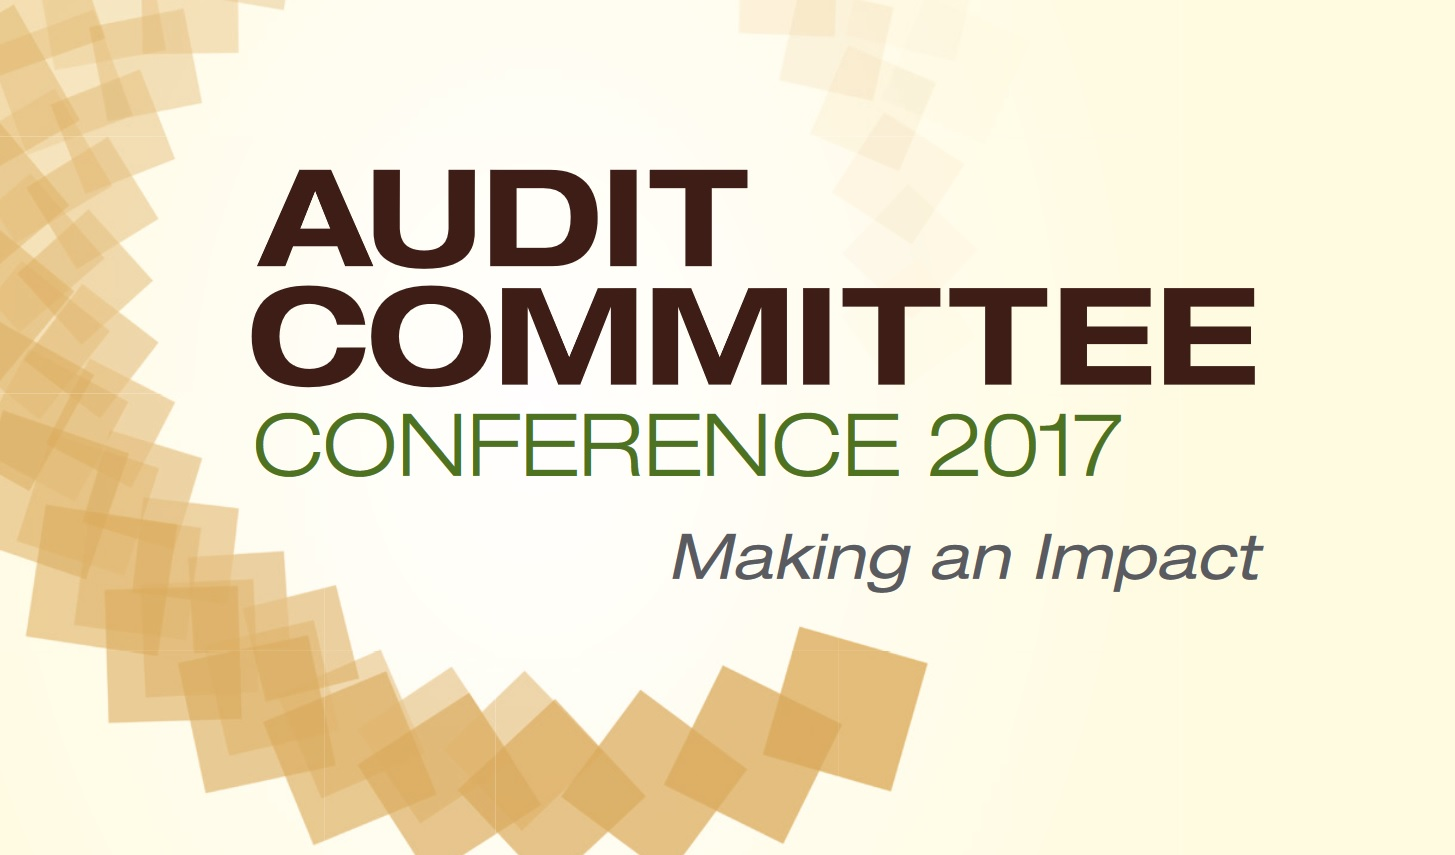 commision on audit Parties, and considered a range of issues concerning the independent audit function the commission issued a report of tentative conclusions in march, 1977 and.